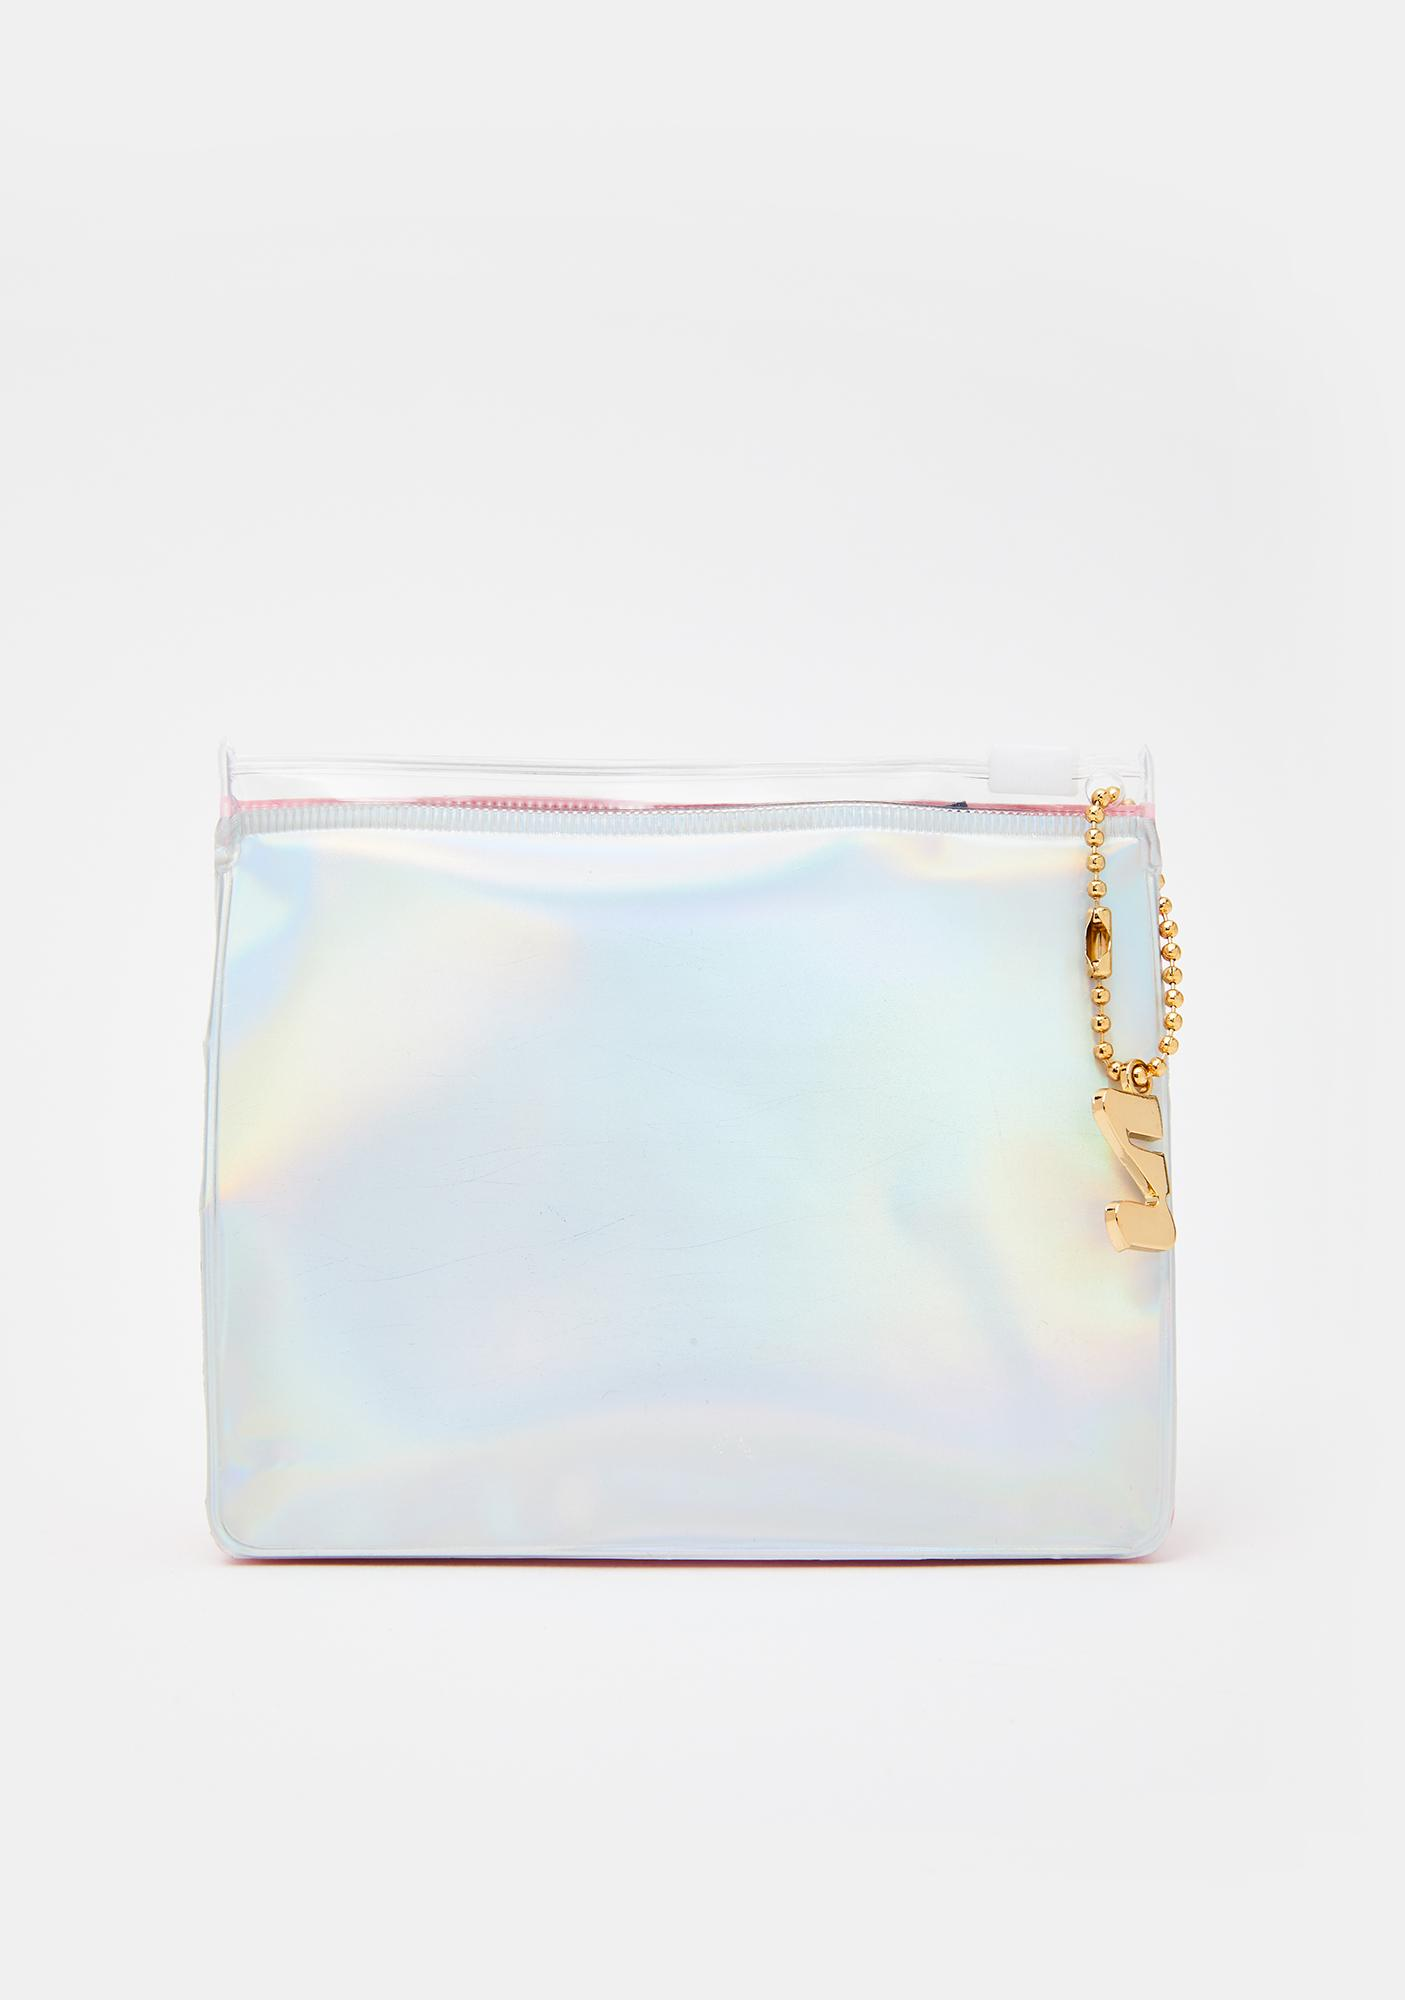 Unbound Babes OH To Go Bag